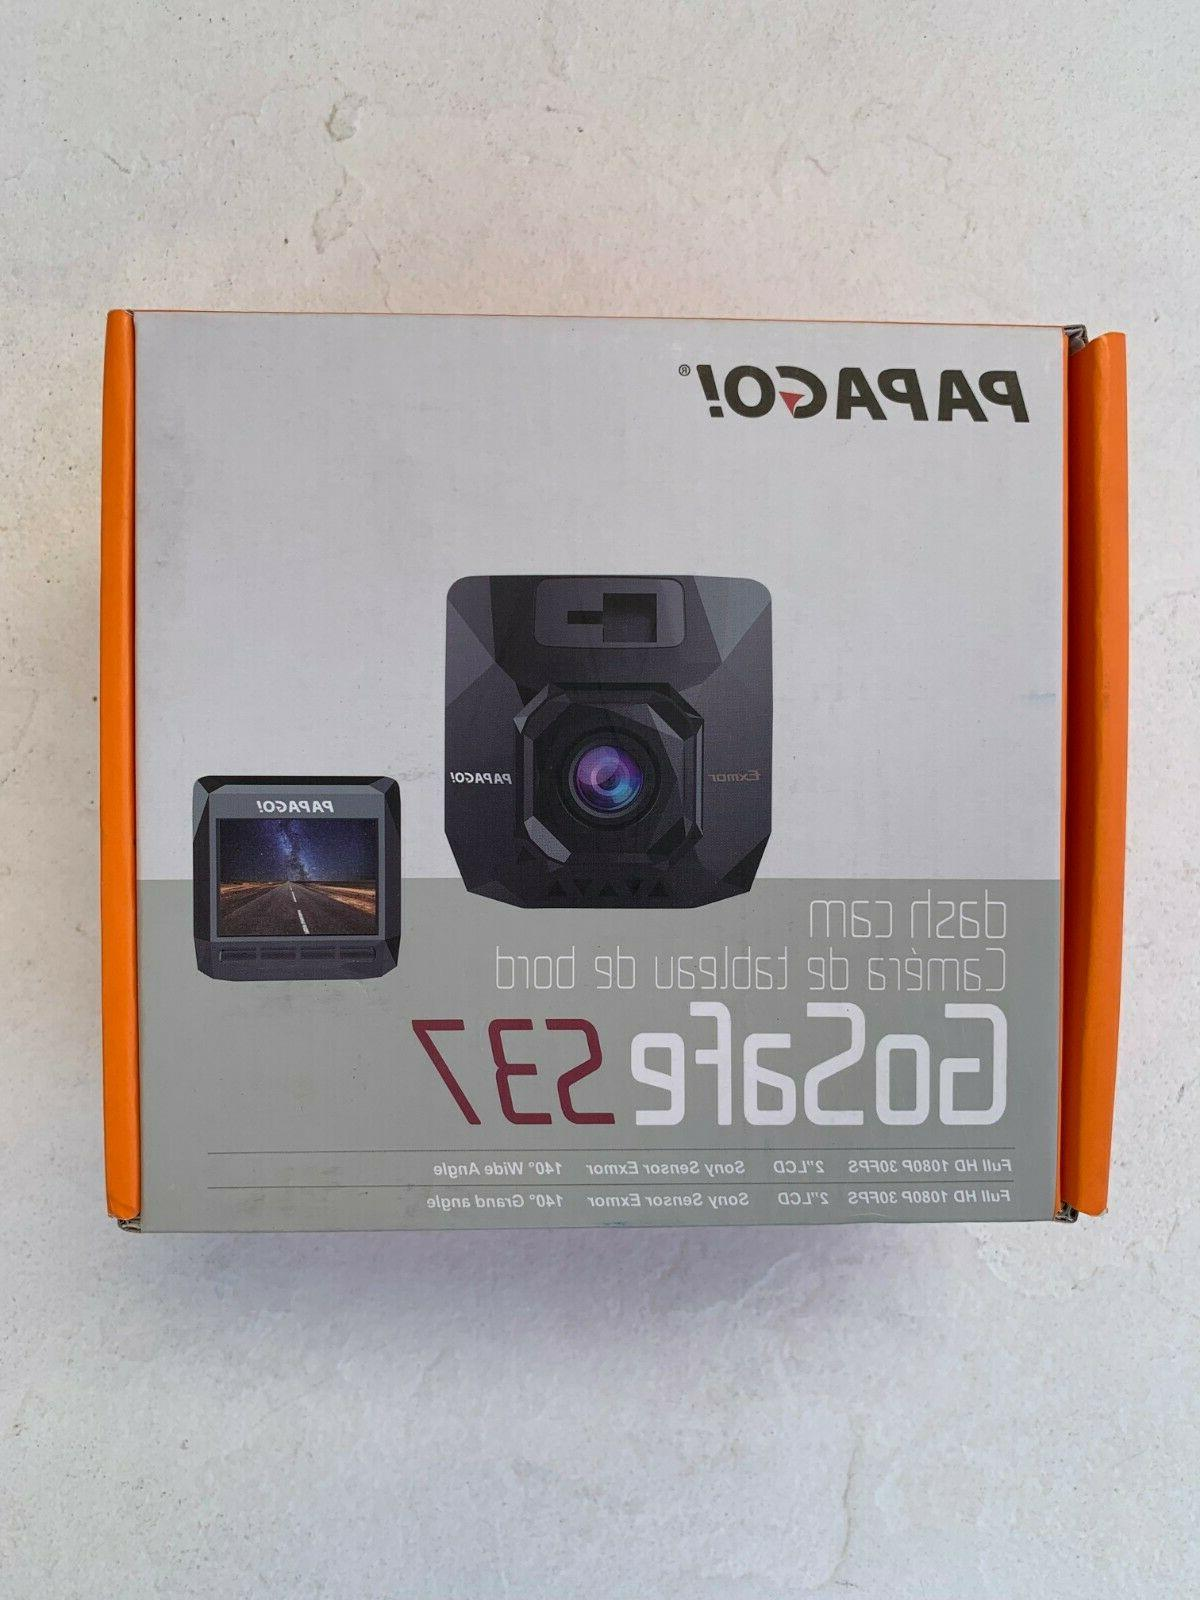 gosafe s37 dash camera